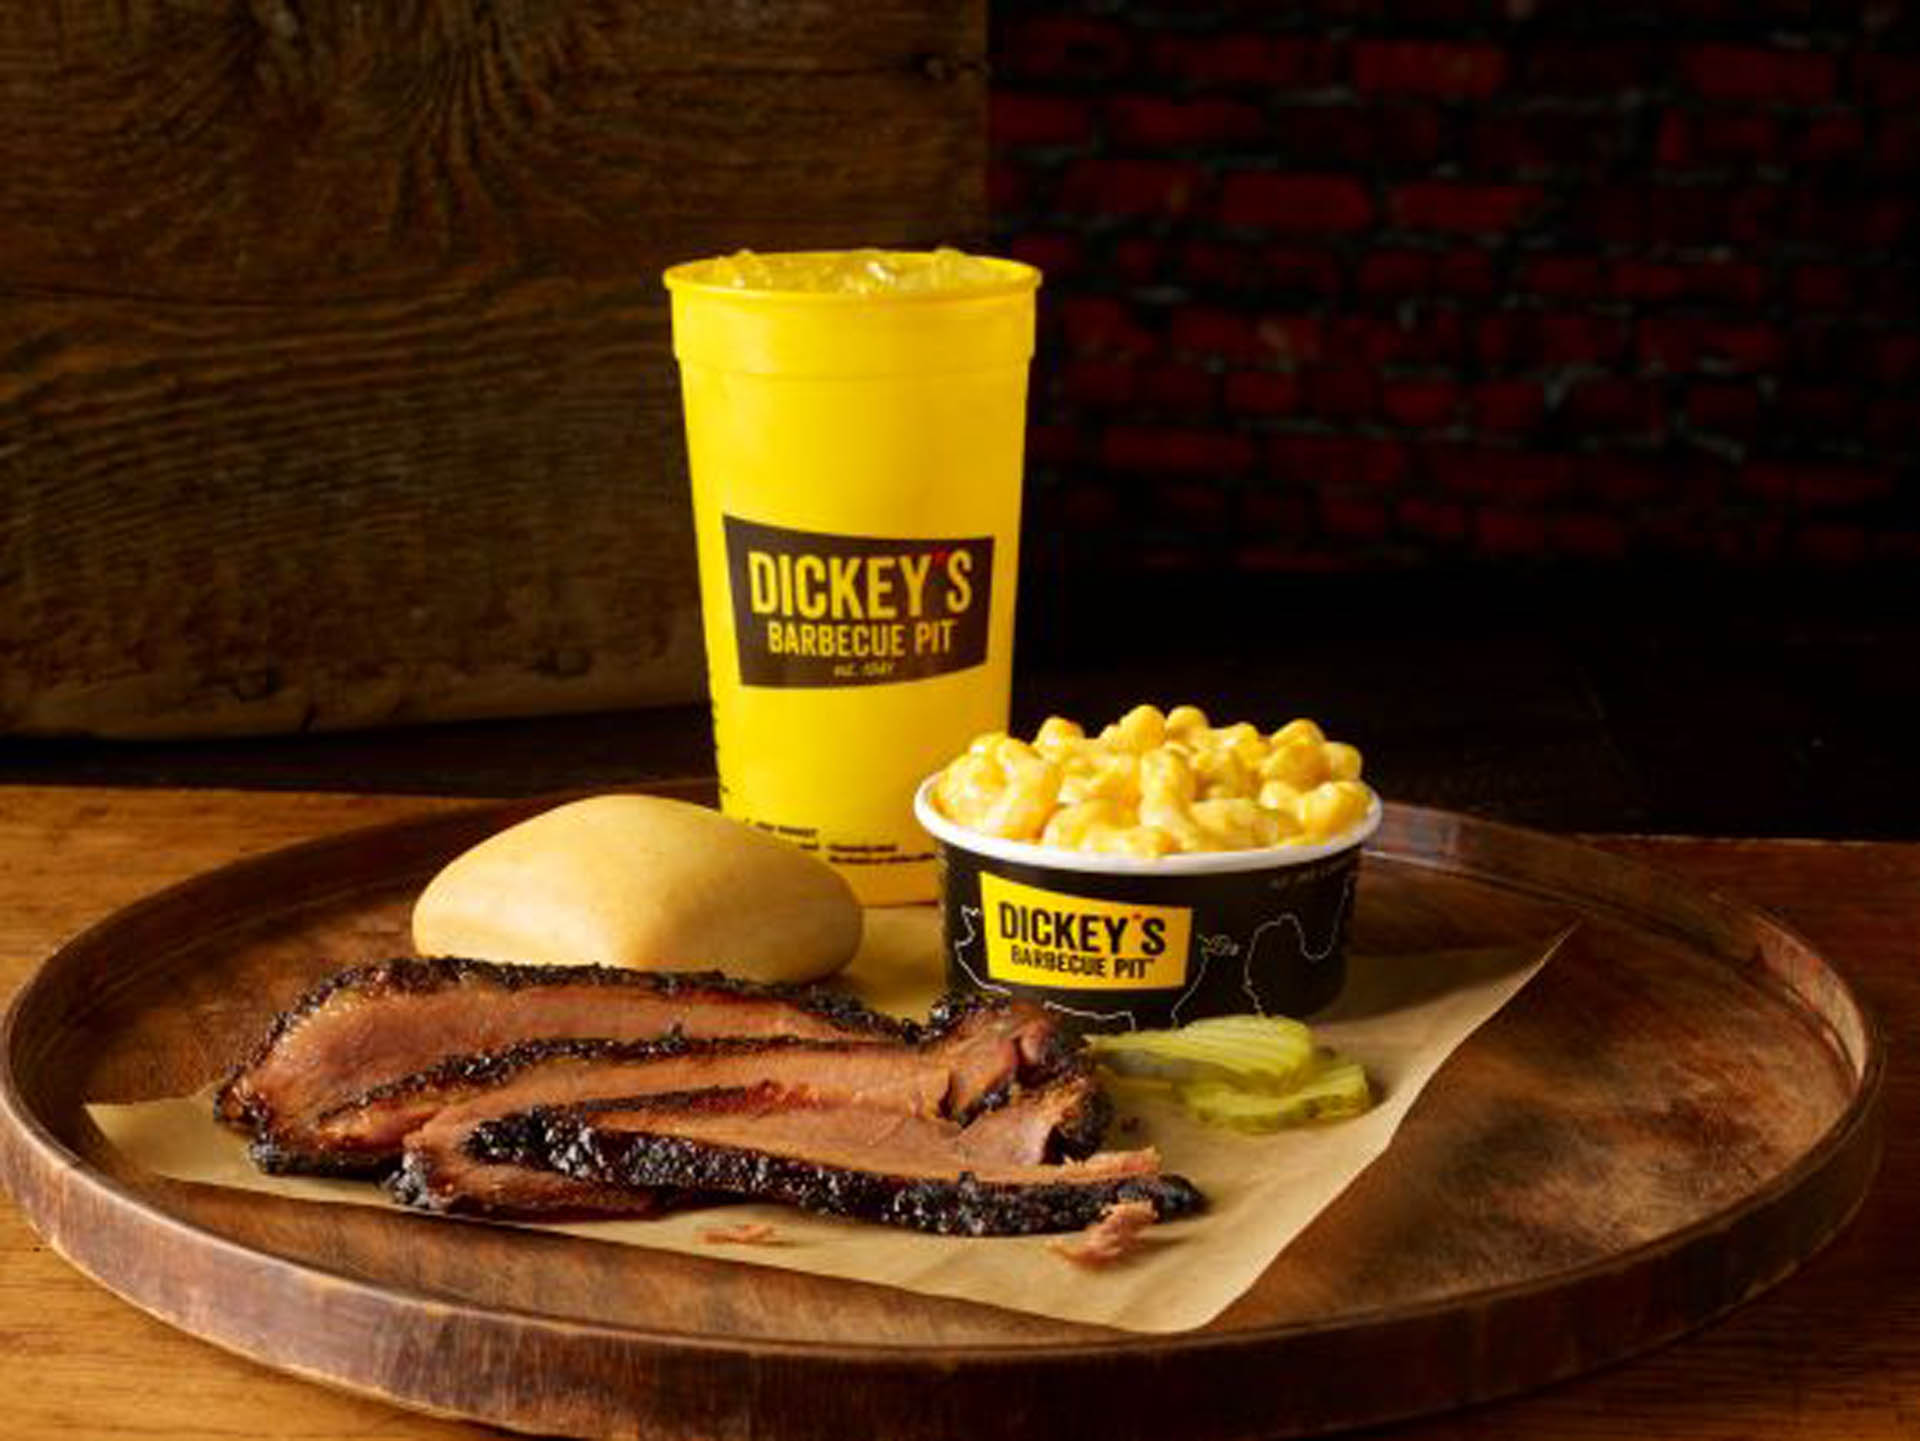 Restaurant News: Dickey's Barbecue Pit Owner Brings New Location to Pearland, TX